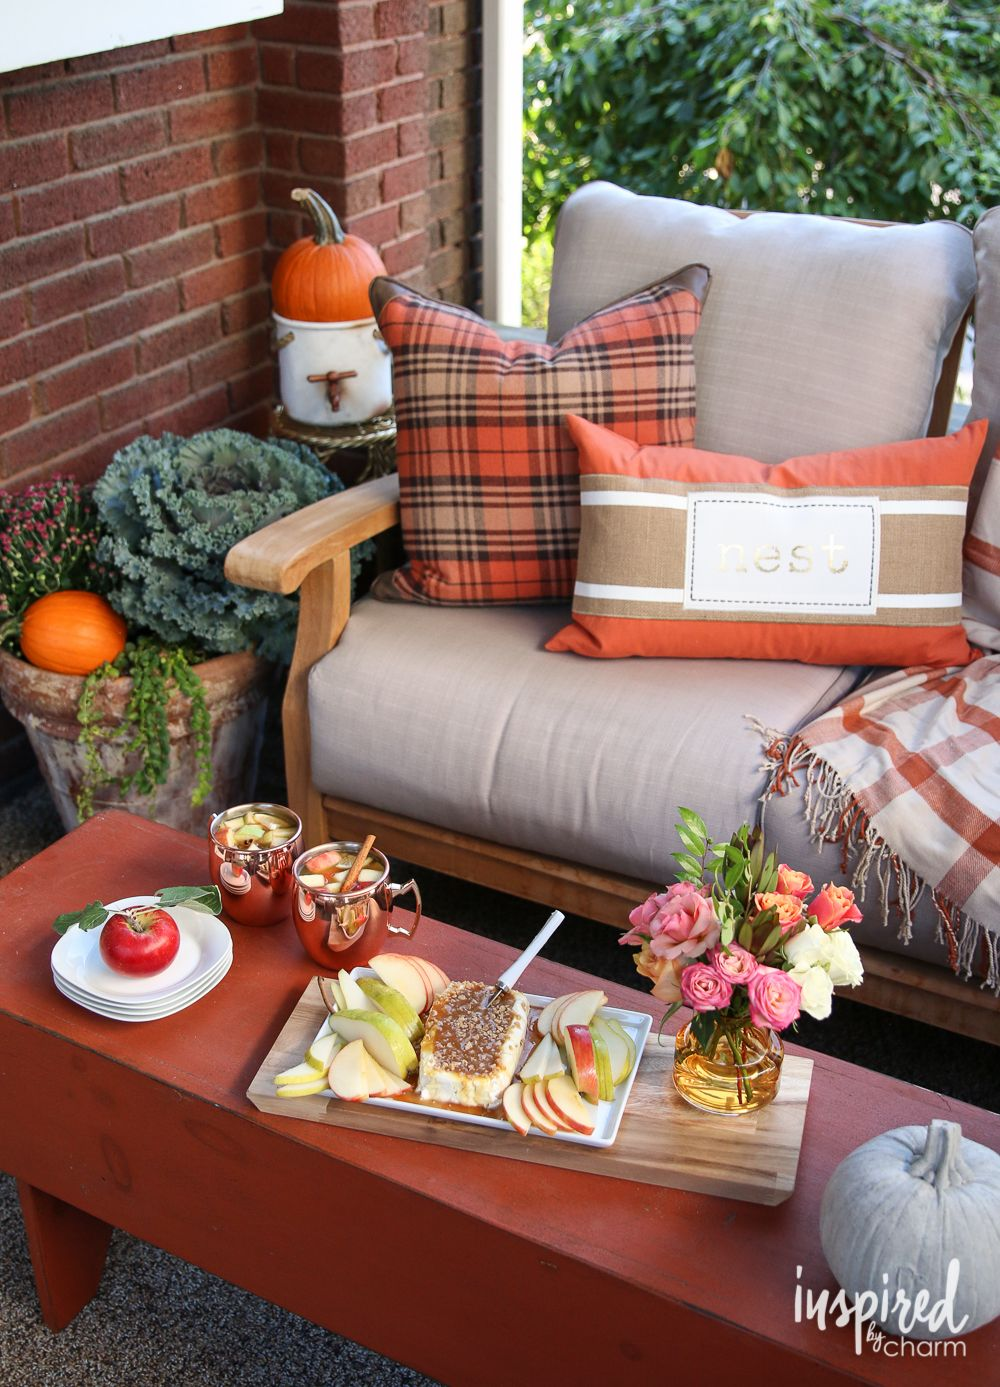 Fall Entertaining-Around-My-House Tour| inspiredbycharm.com